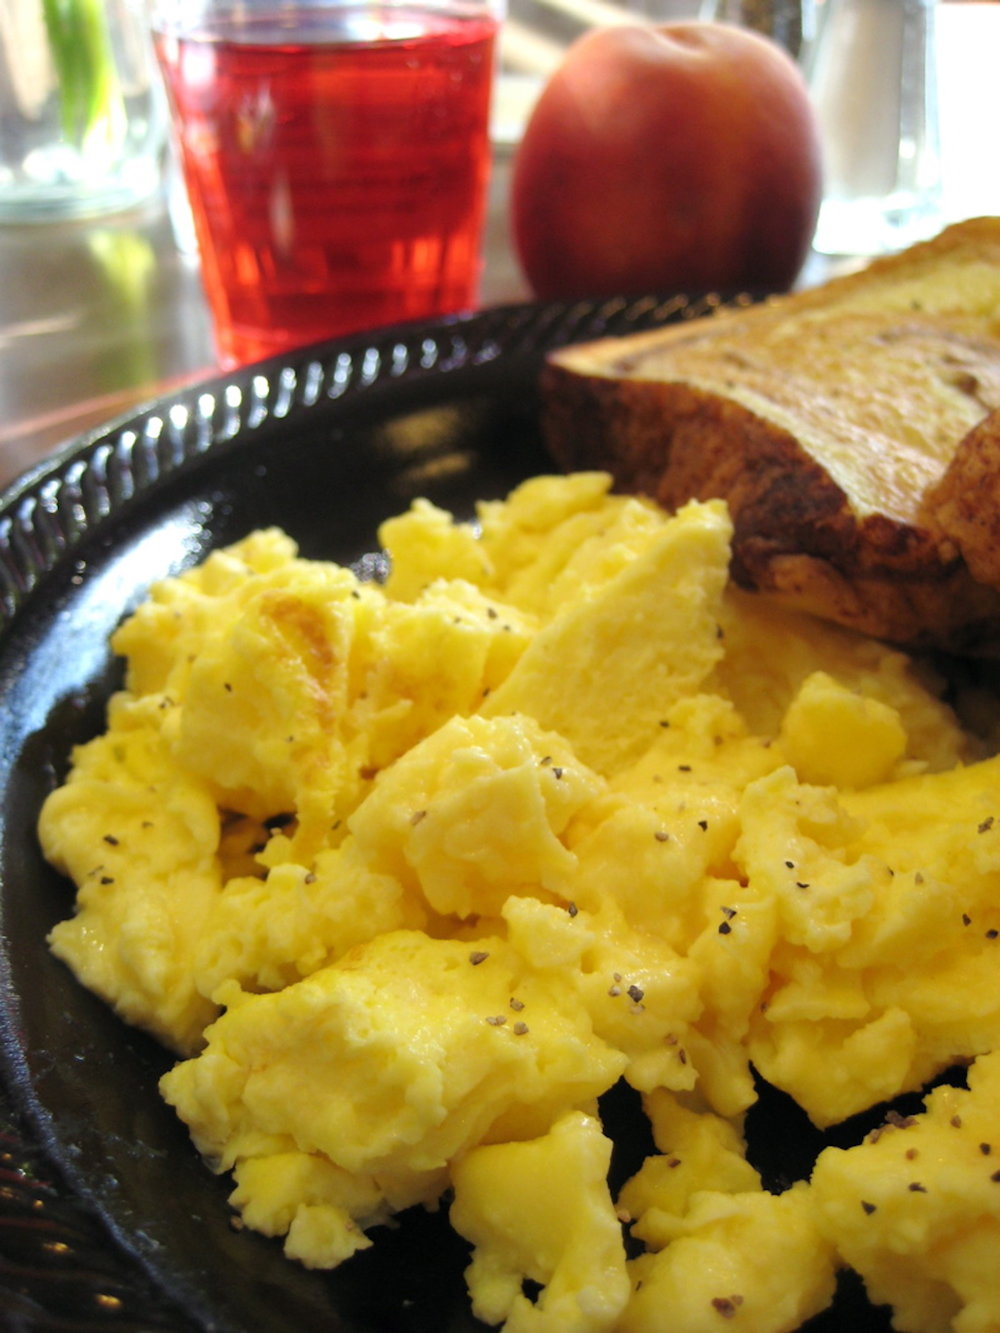 Scrambled eggs and fruit. For fluffier eggs, add water before scrambling. (Annie Mole/Flickr Creative Commons)